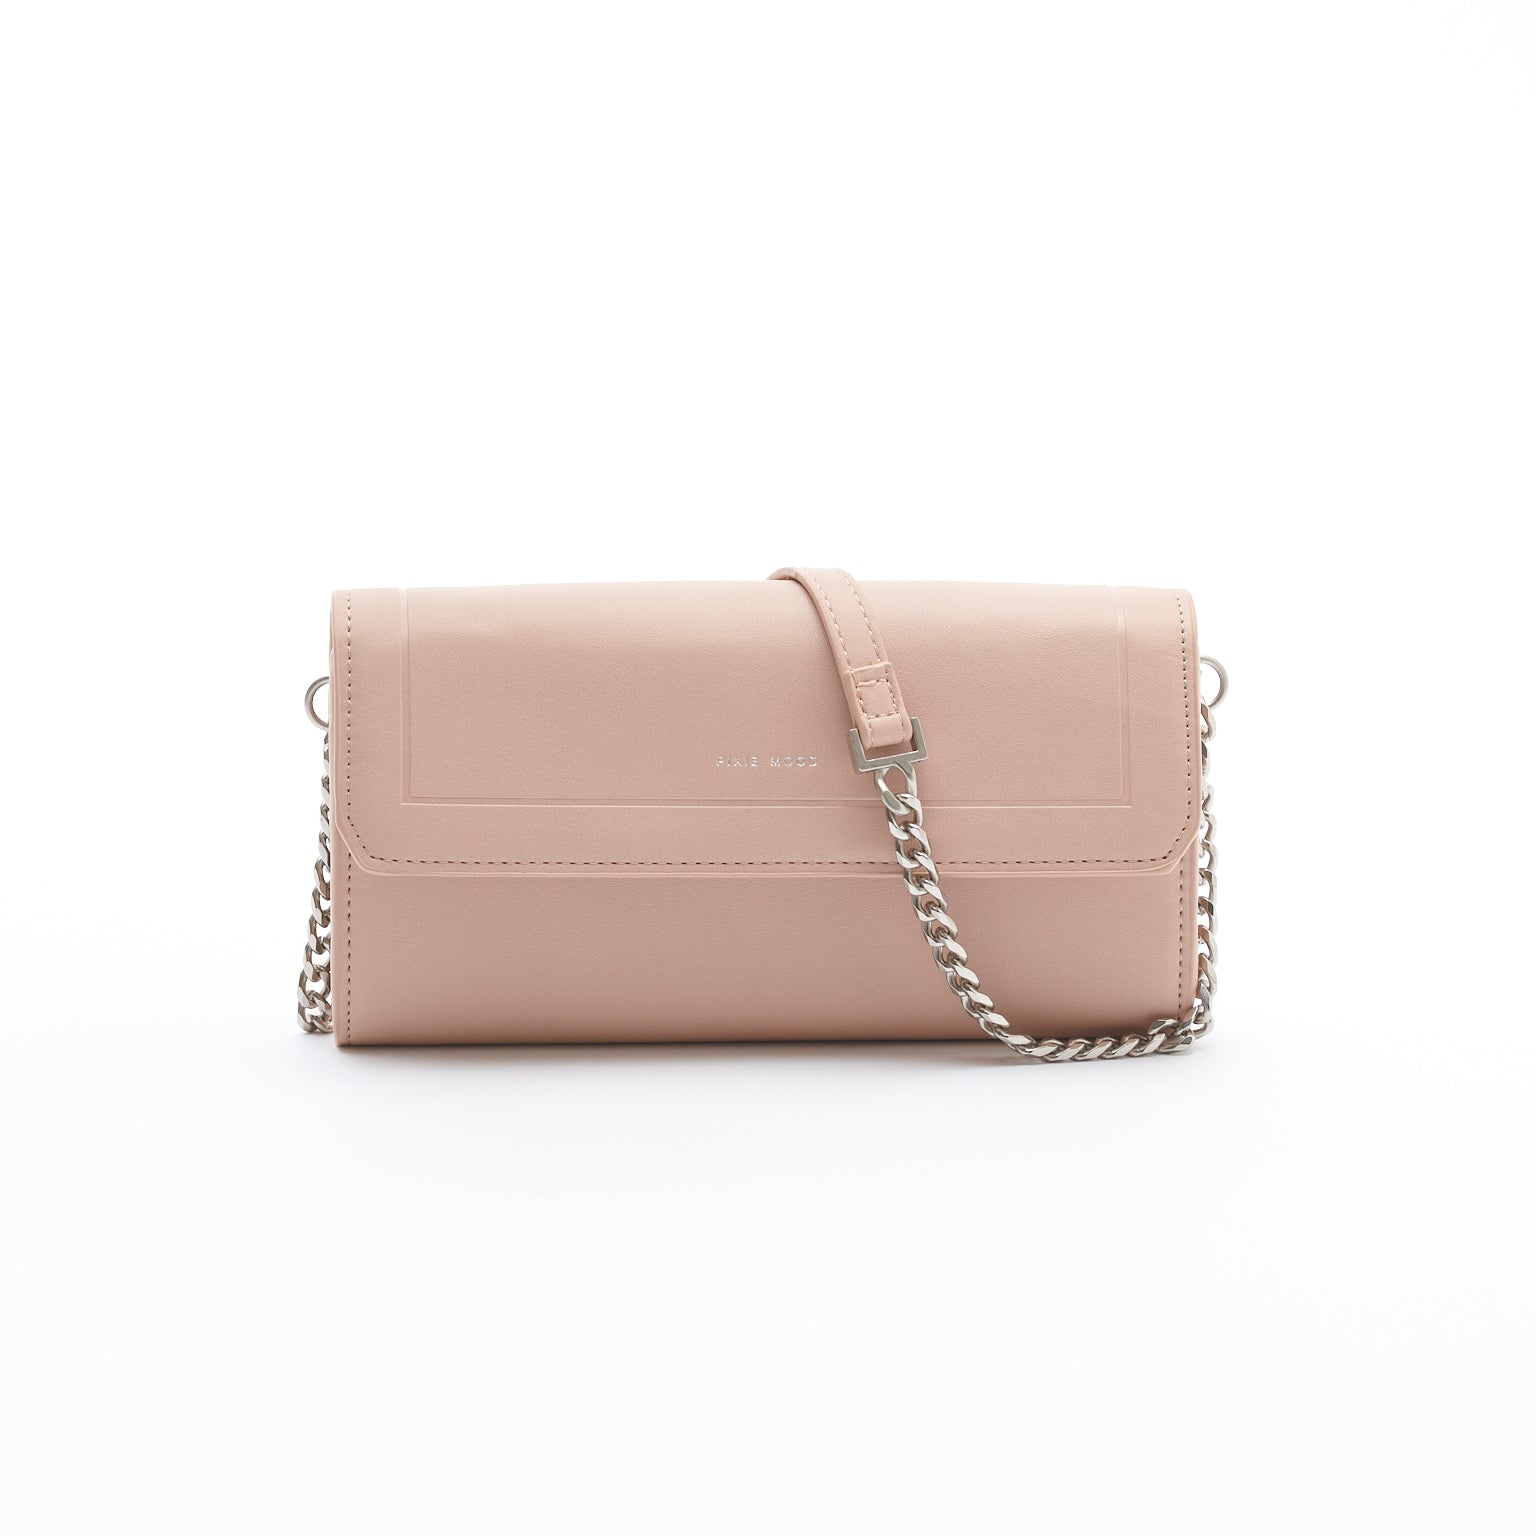 Pixie-Mood-Rebecca-Wallet/Purse-Tan